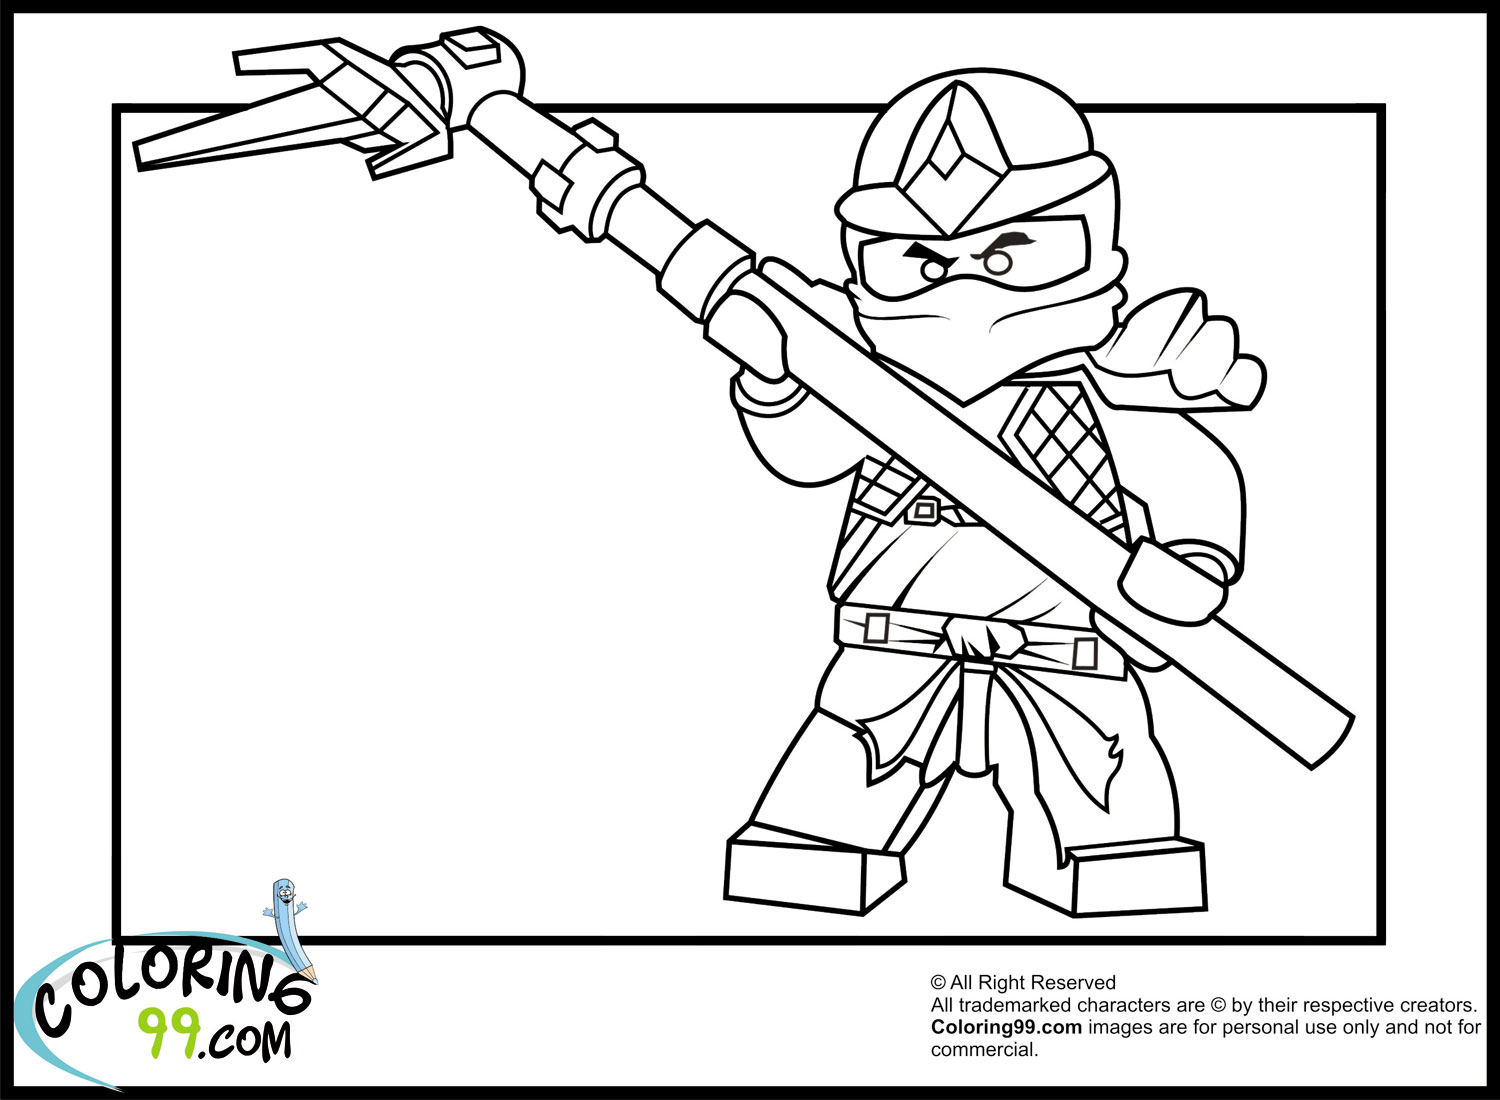 Ninja Coloring Pages Printable Easy Ninja Coloring Pages To